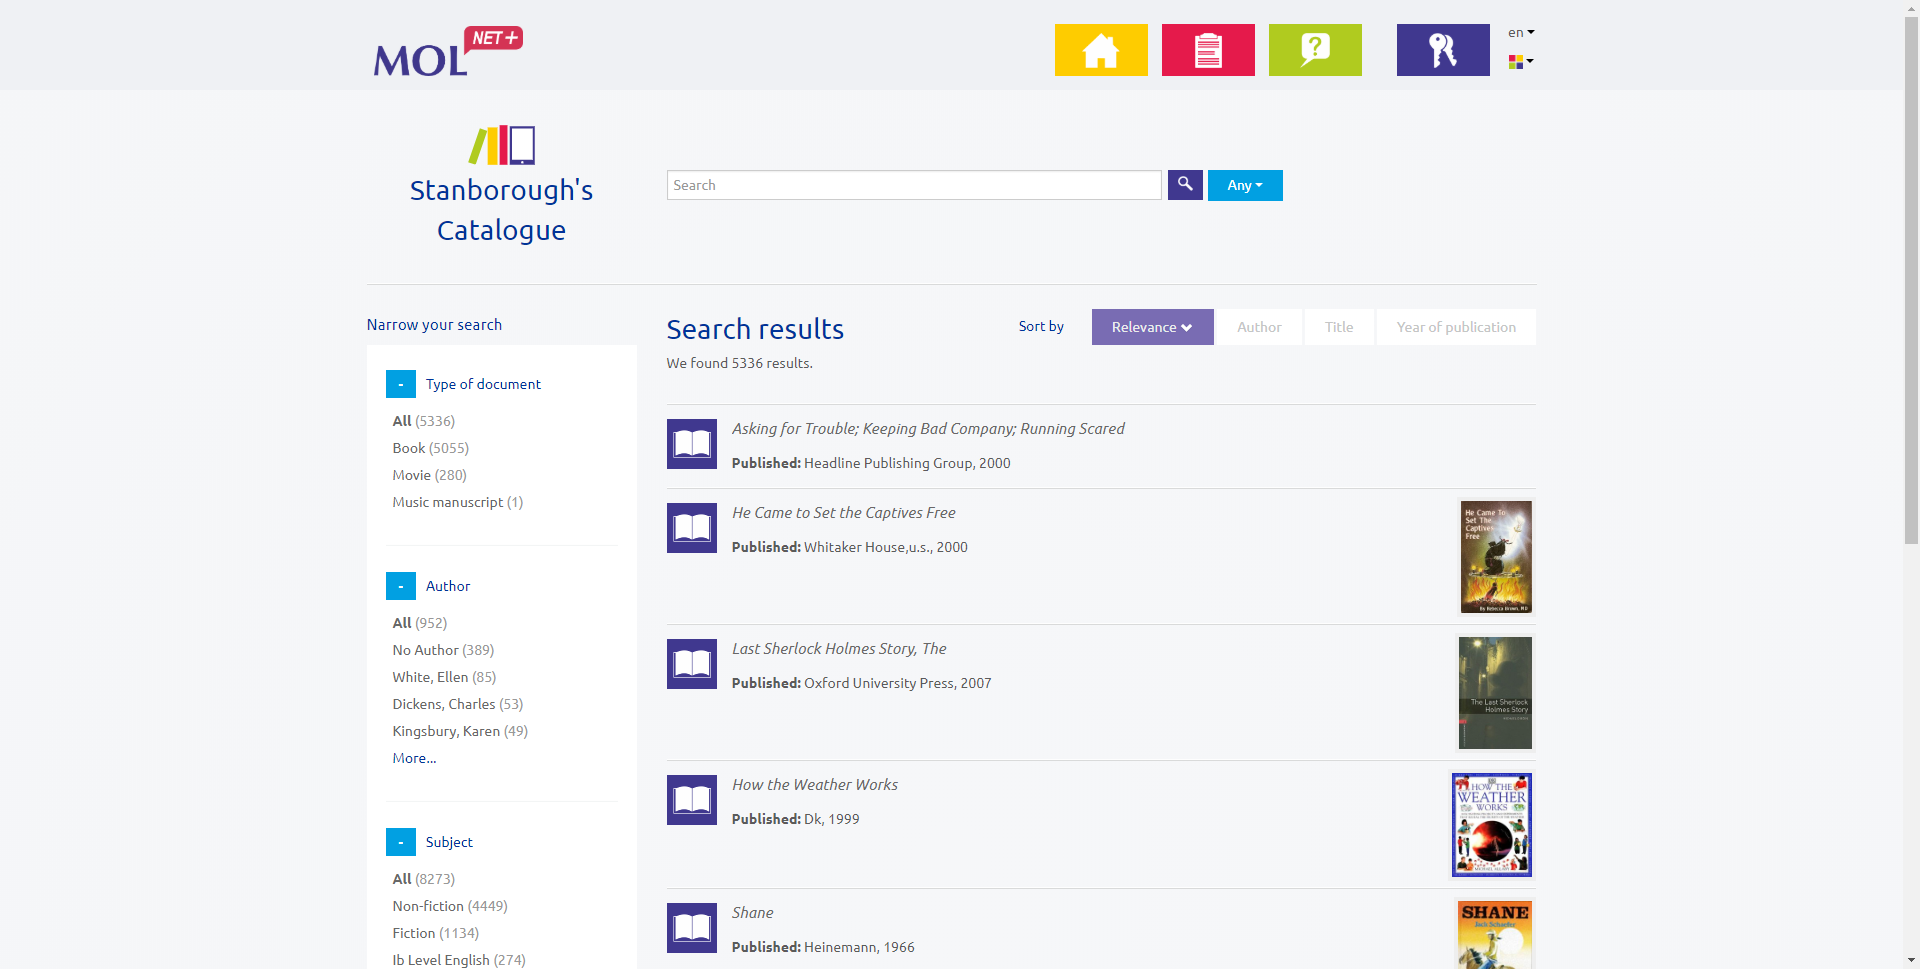 OPAC search results